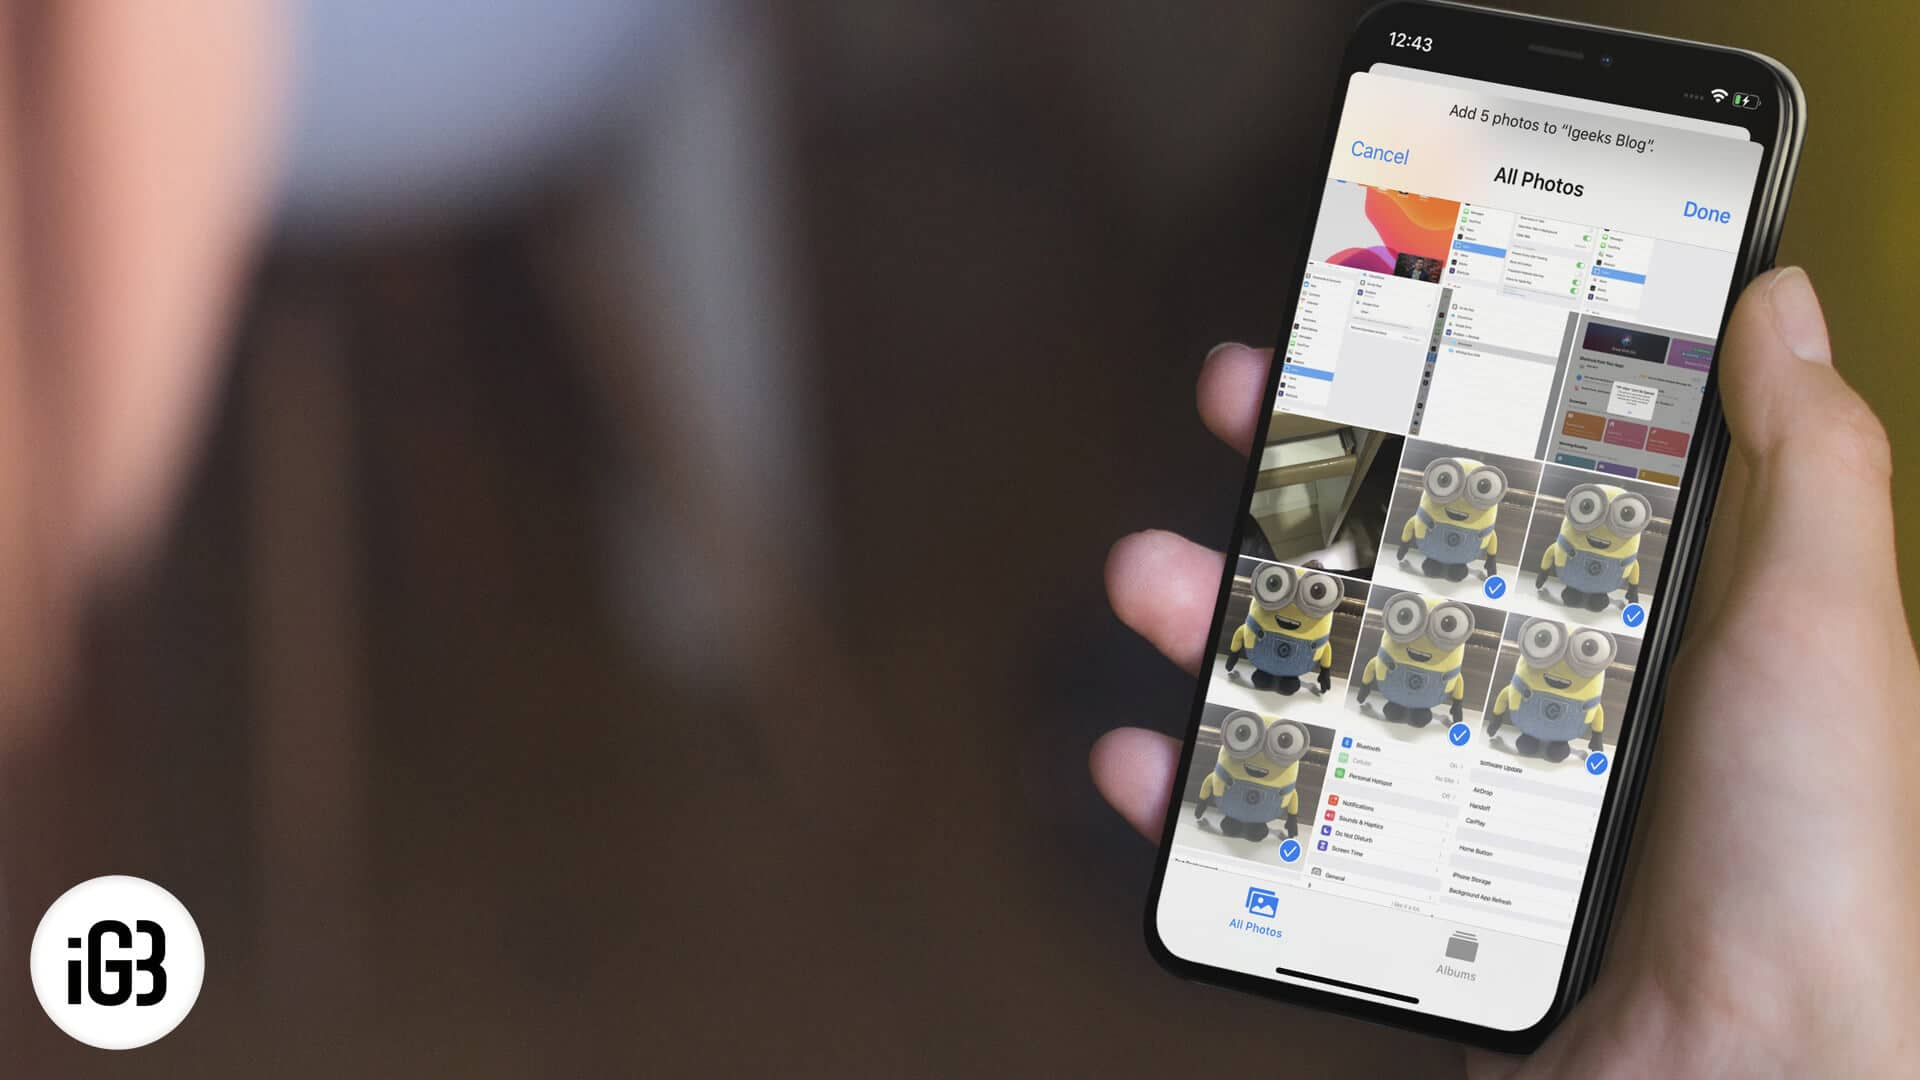 How to Add Photos to Album on iPhone